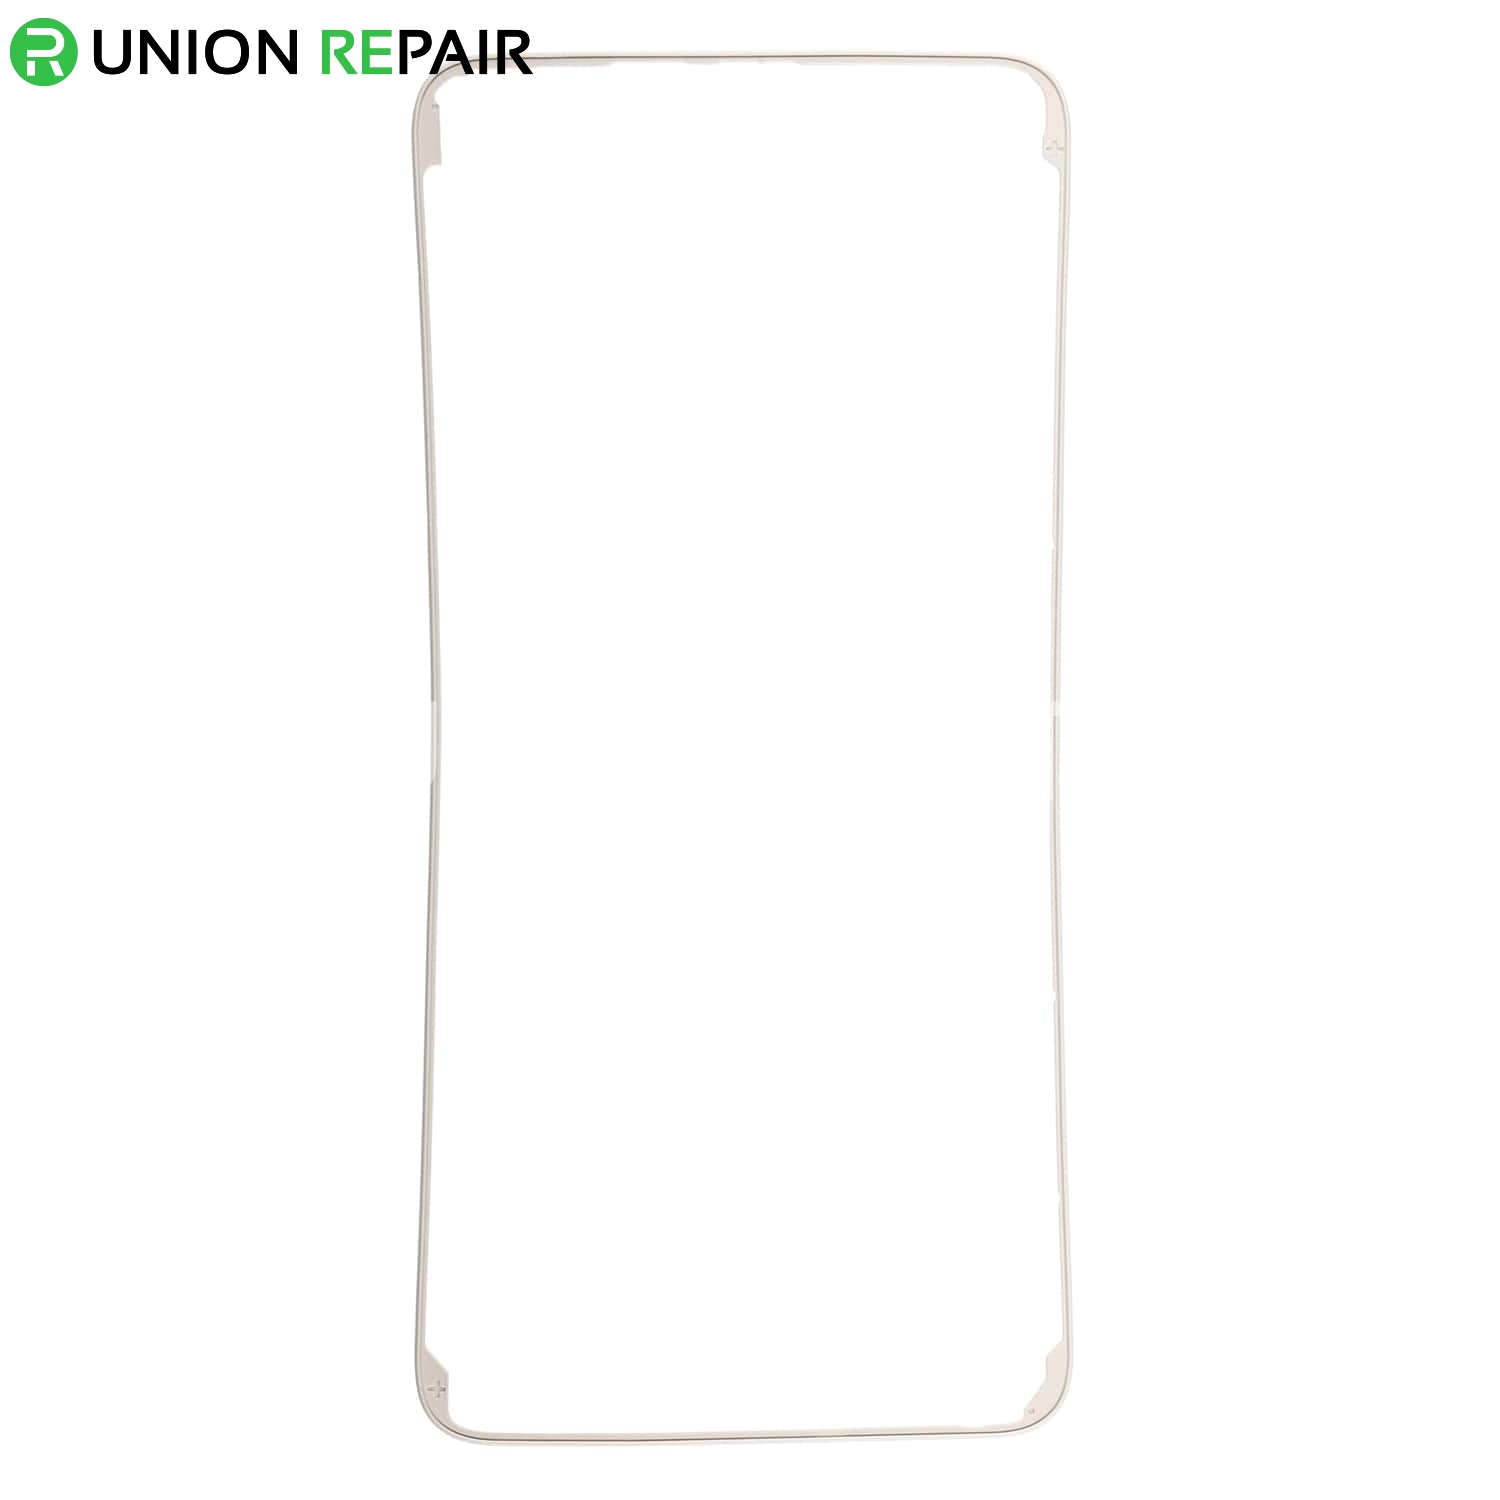 Replacement for Huawei P10 Plus Front Housing Frame - White